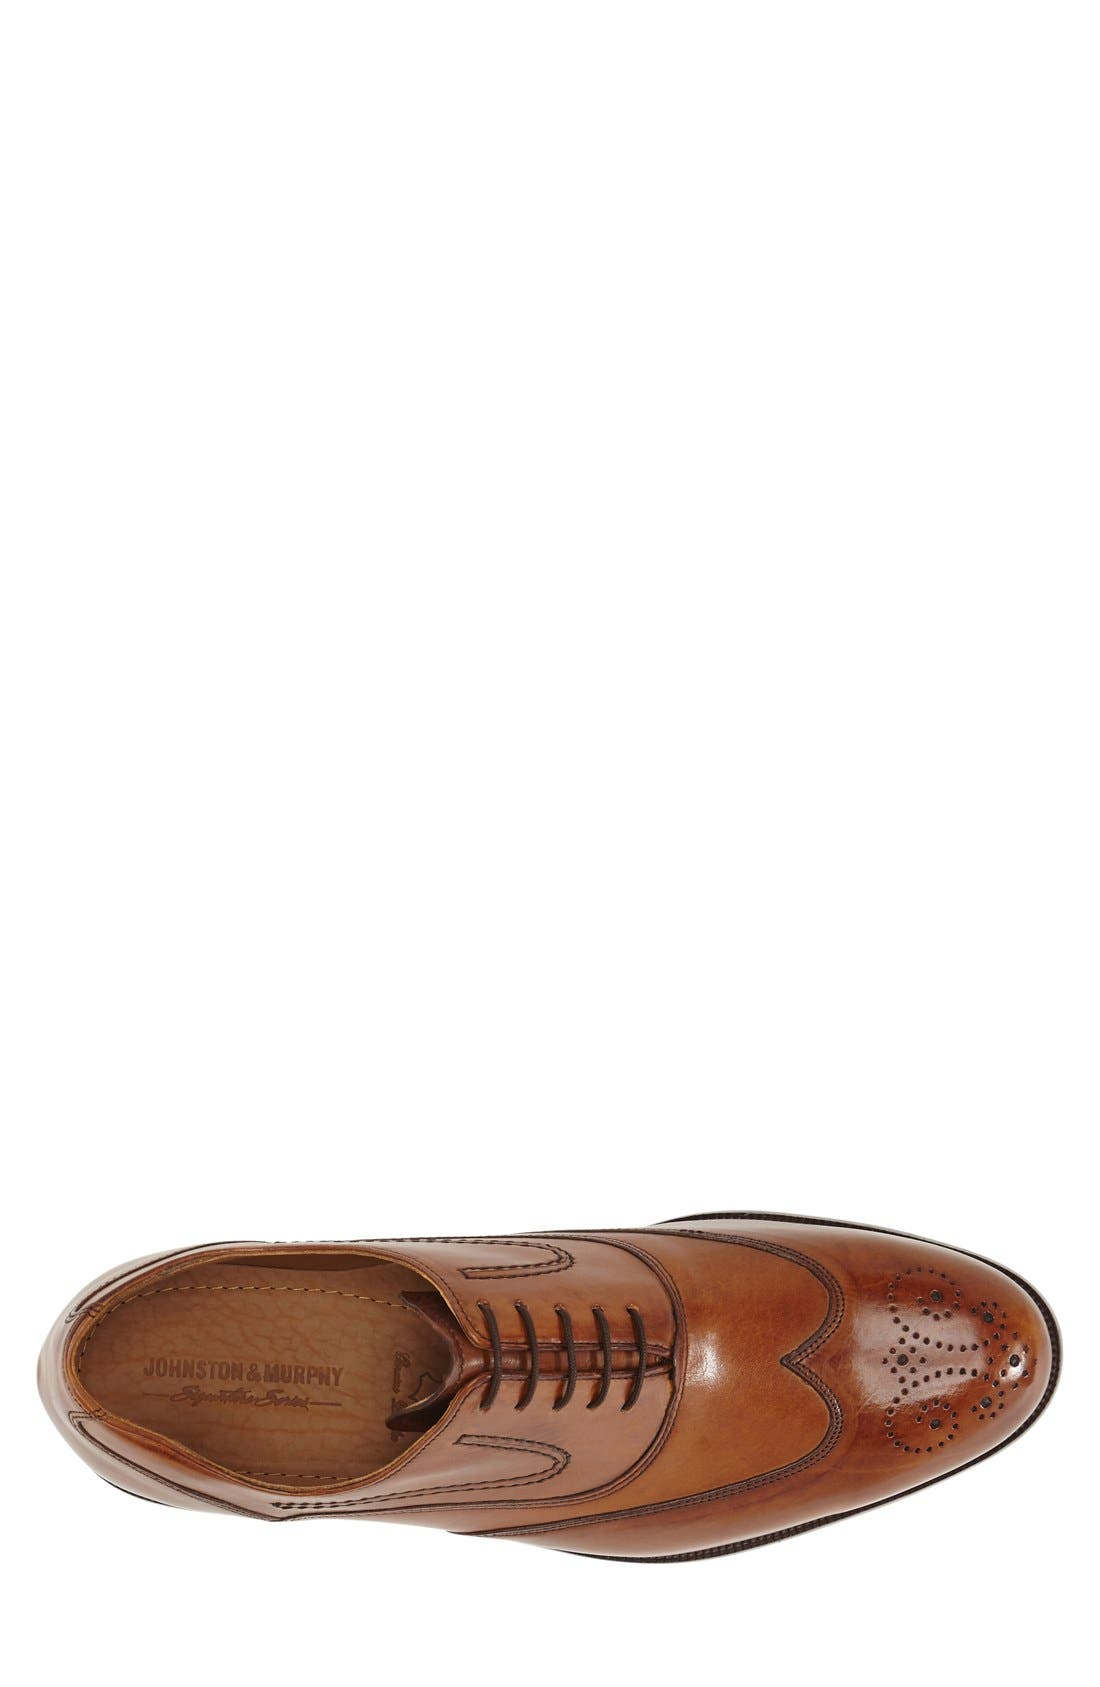 'Stratton' Wingtip Oxford,                             Alternate thumbnail 3, color,                             240